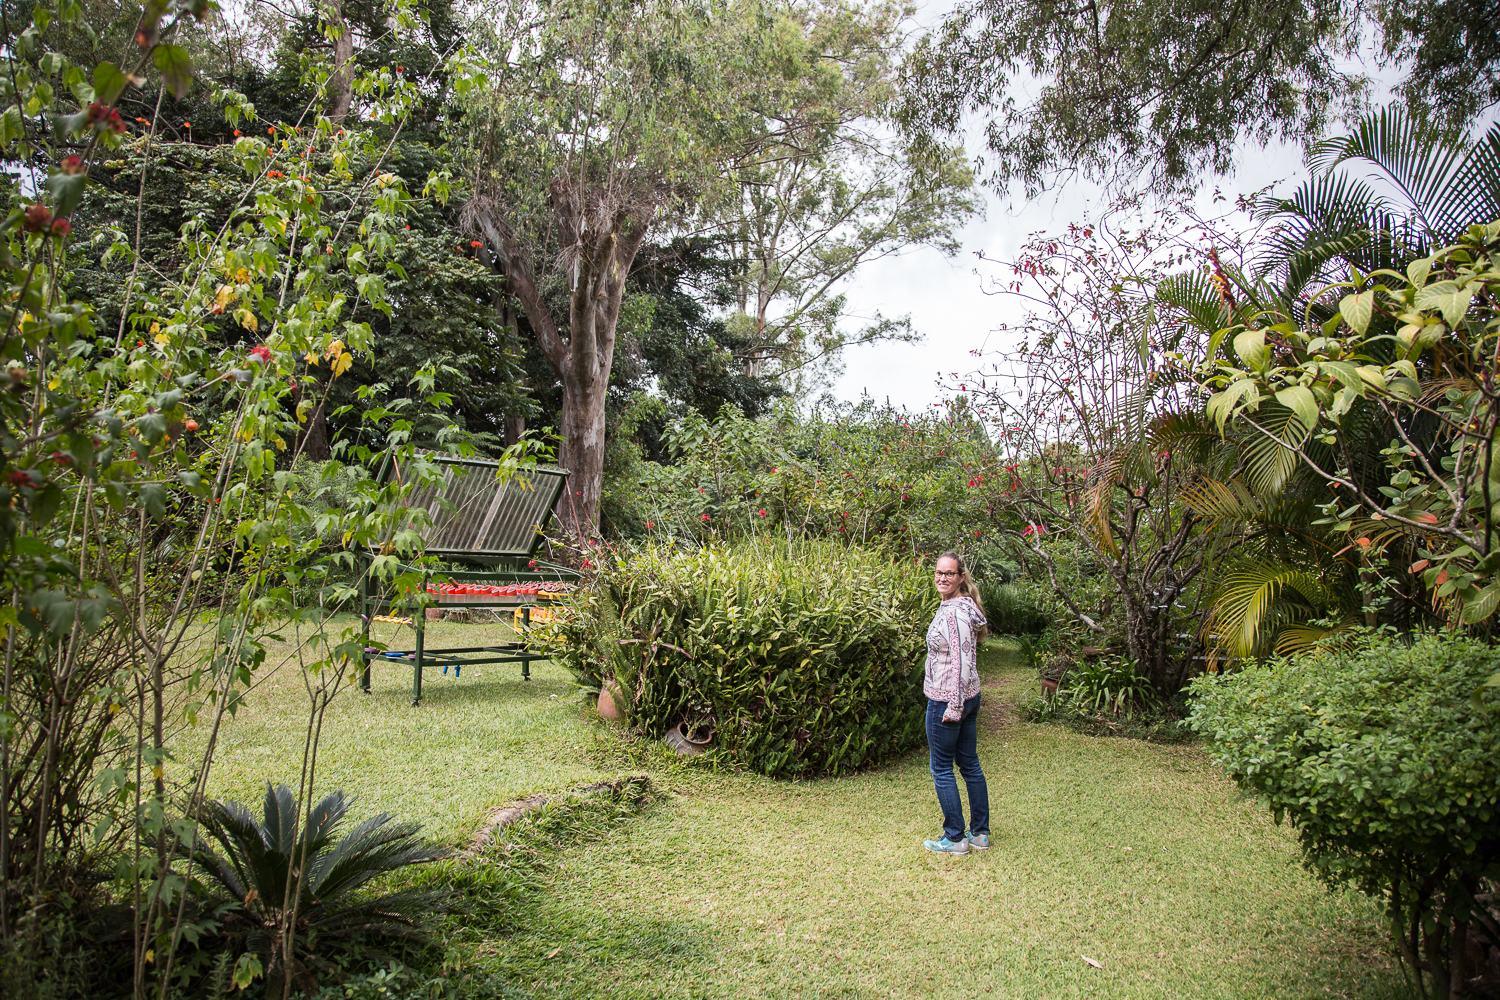 The Zomba Forest Lodge is positioned most of the way up the plateau, with incredible views. With no electricity, the lodge is lit at night mostly by oil lanterns and candles, and solar lights in the bedrooms.